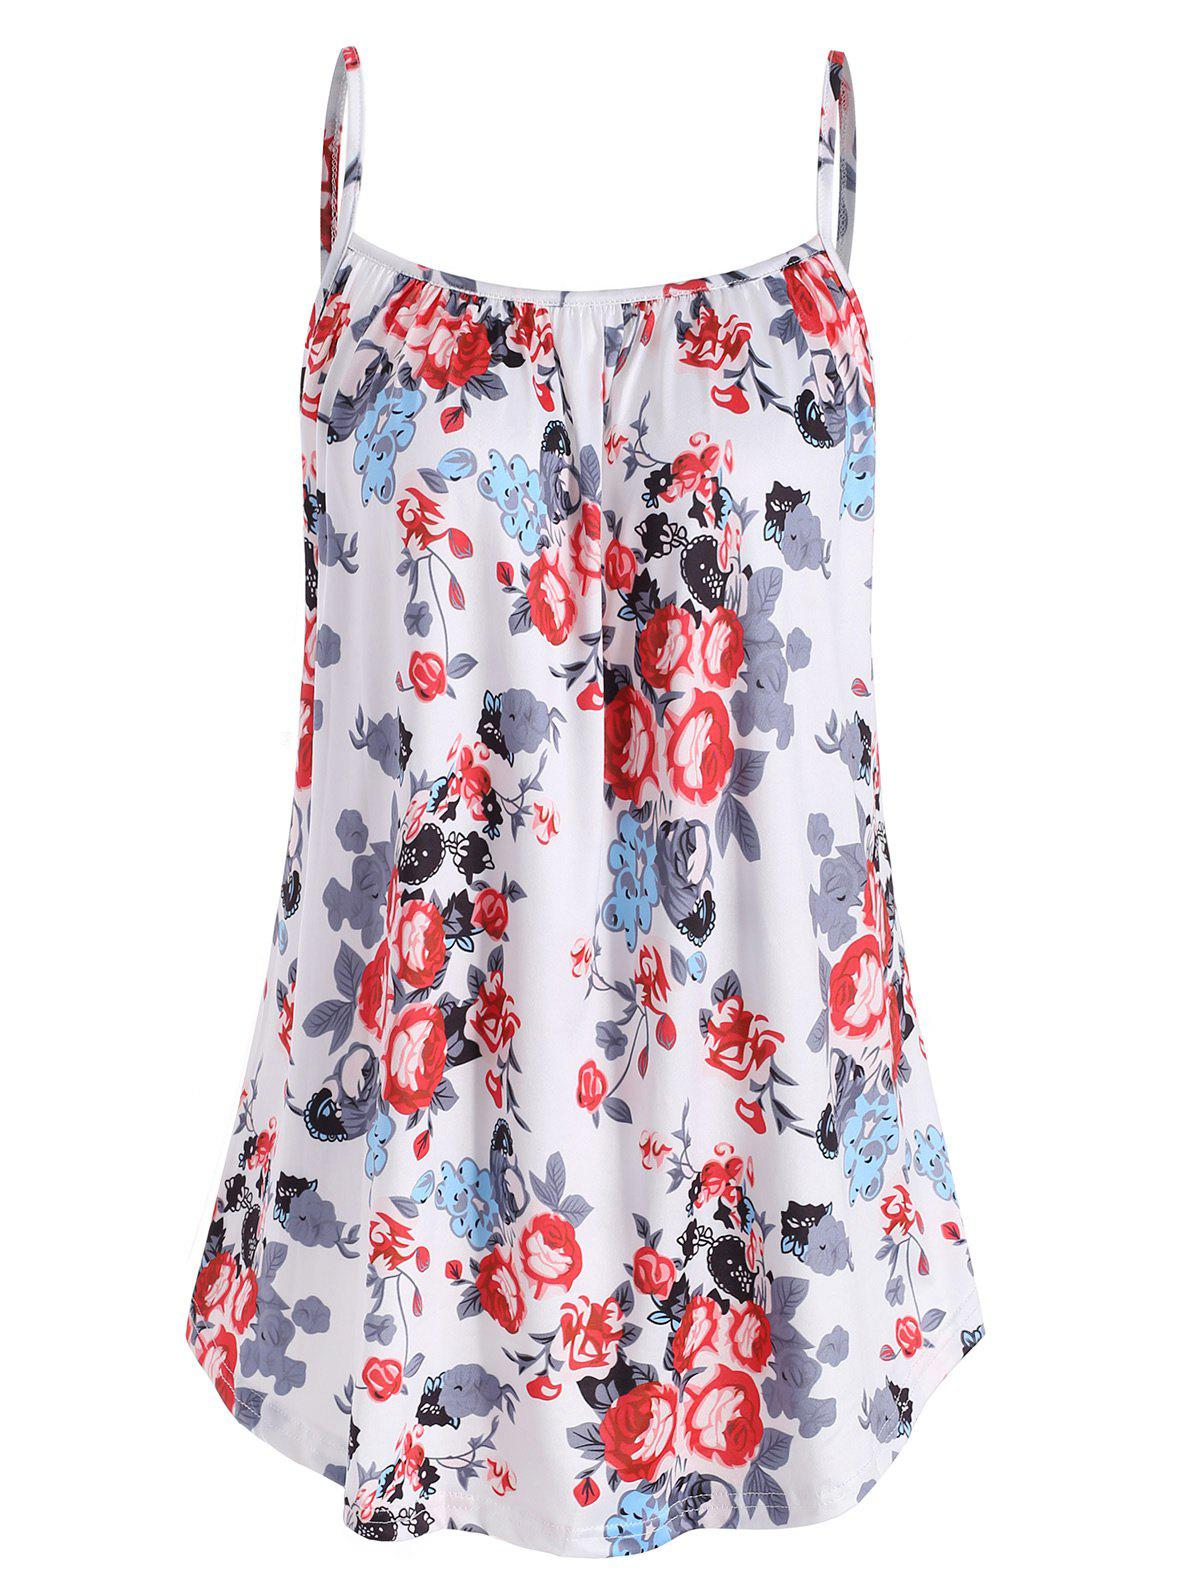 Flower Casual Cami Tank Top, White